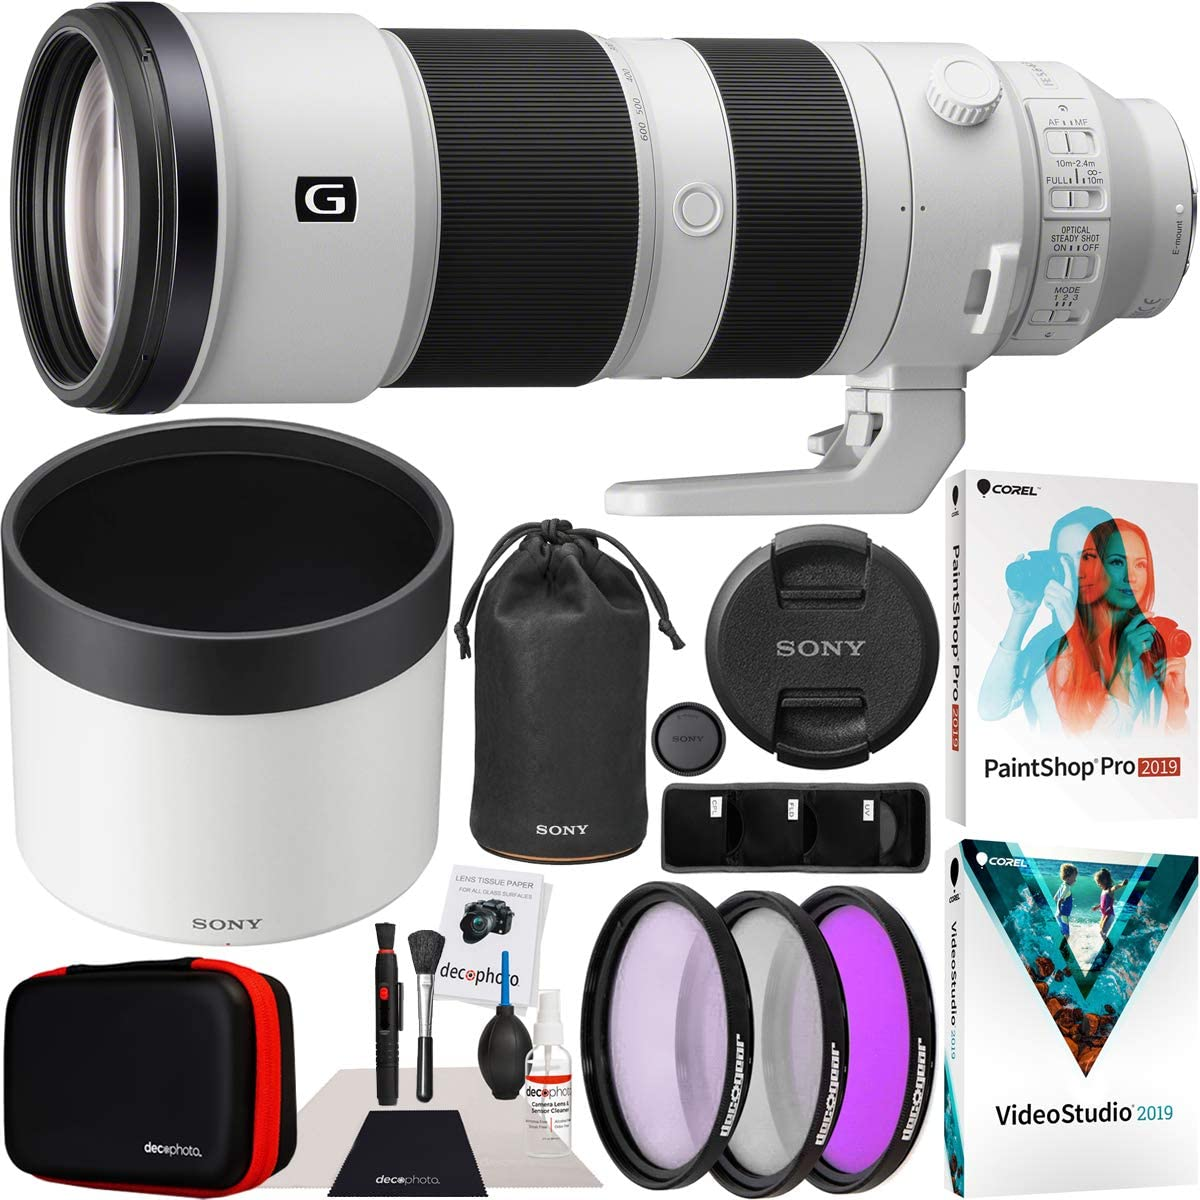 Sony FE 200-600mm F5.6-6.3 G OSS Lens Full Frame Super Telephoto Zoom SEL200600G Professional Lens Bundle with UV FLD CPL Filter Kit + Photo Video Editing Software Kit and Deco Gear Accessories Set